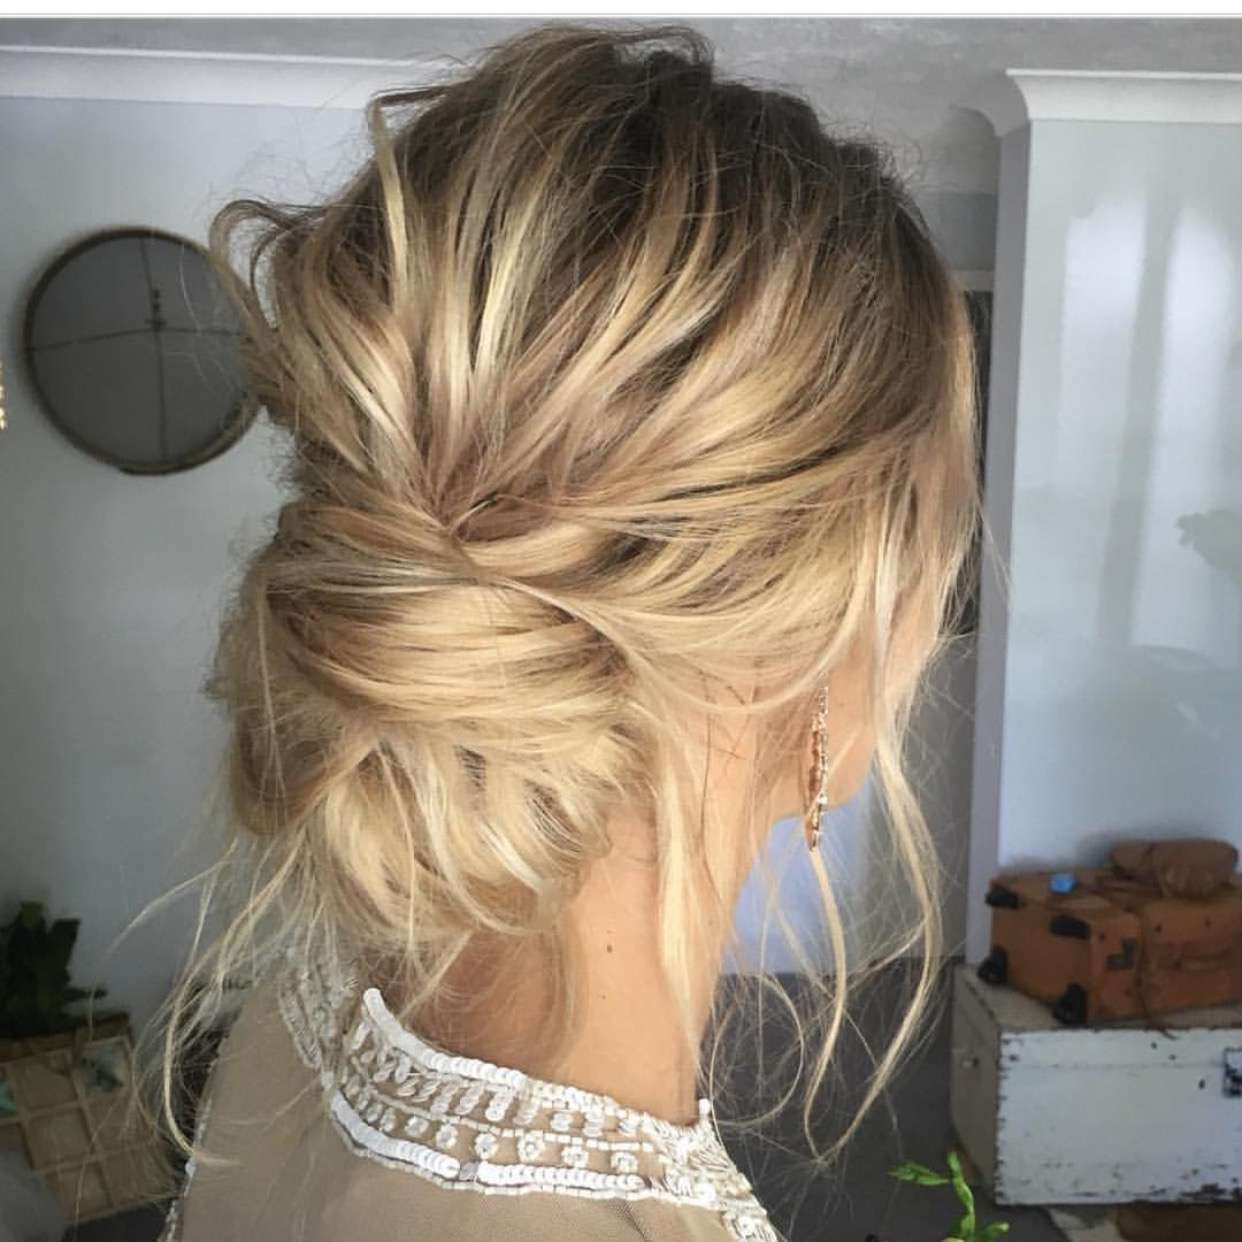 dirty blonde hair ideas color 10 | blondes, prom hairstyles and updo